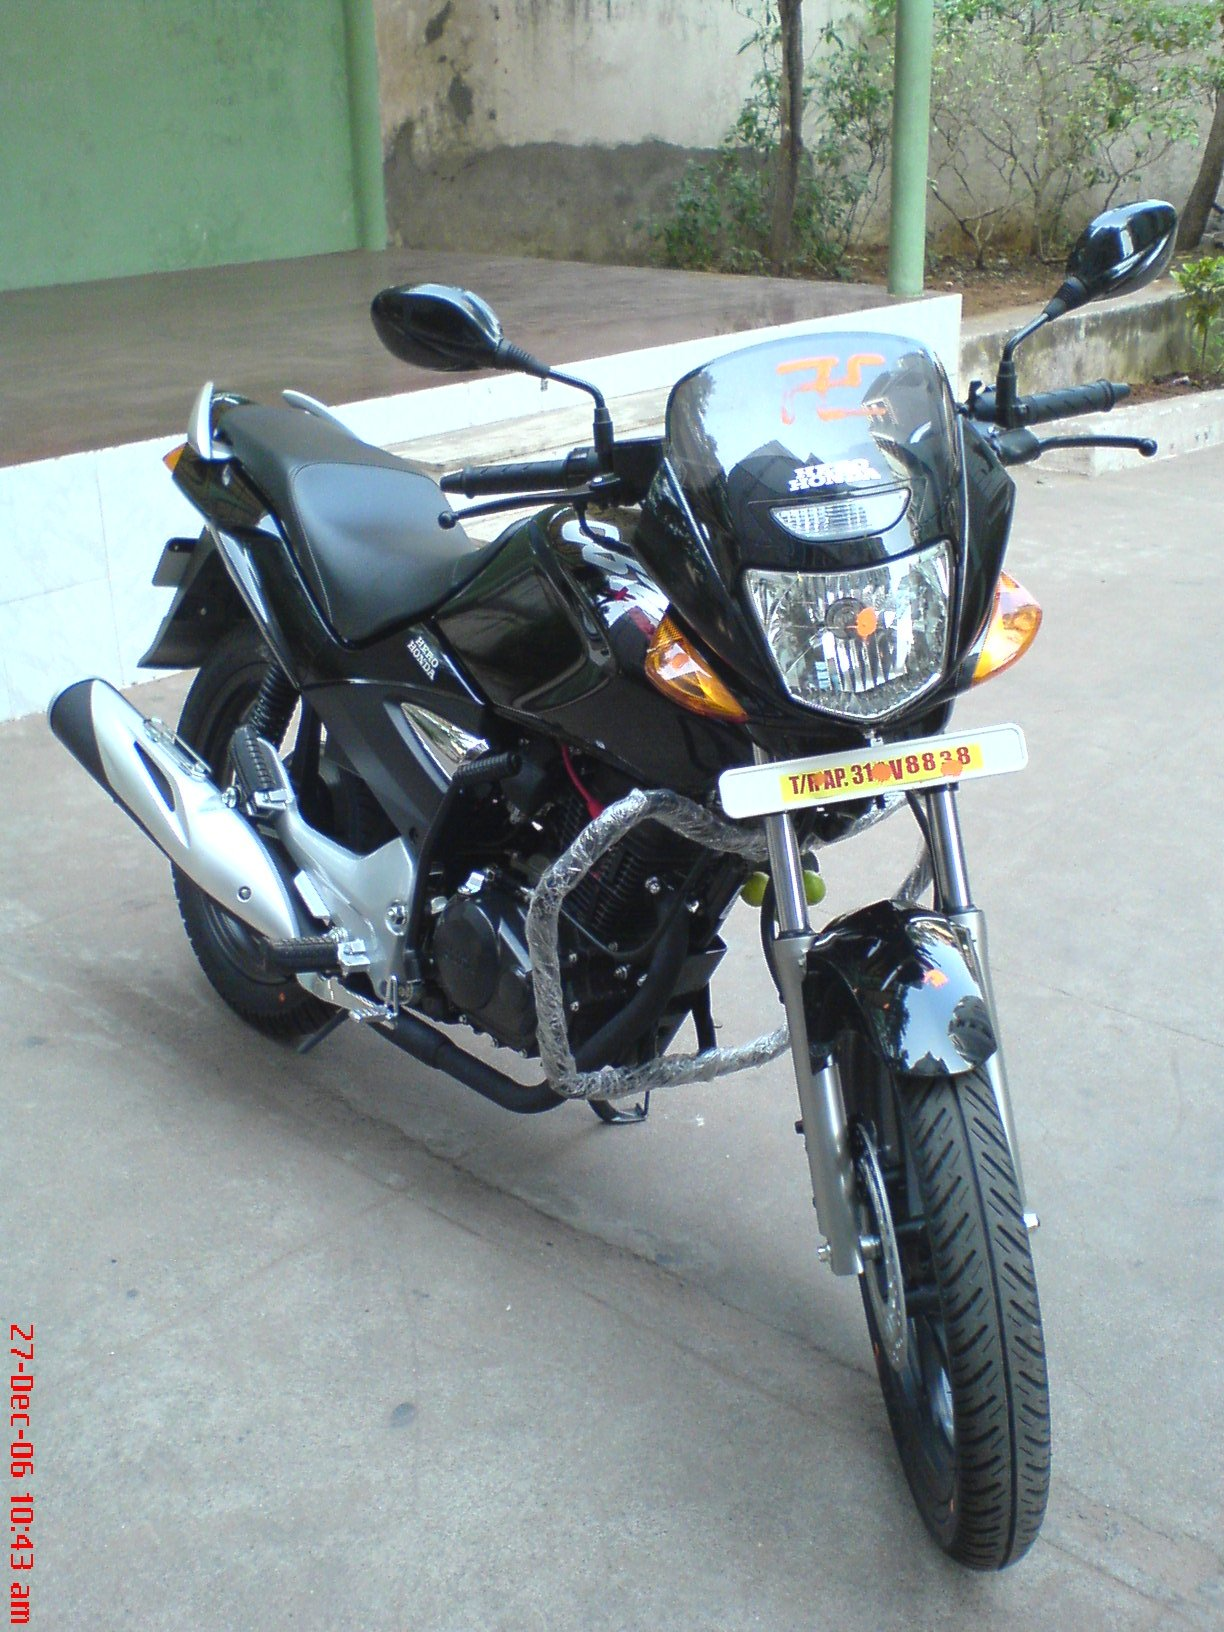 Hero Honda Cbz Xtreme Review Price Model Types Stores - Modern Home